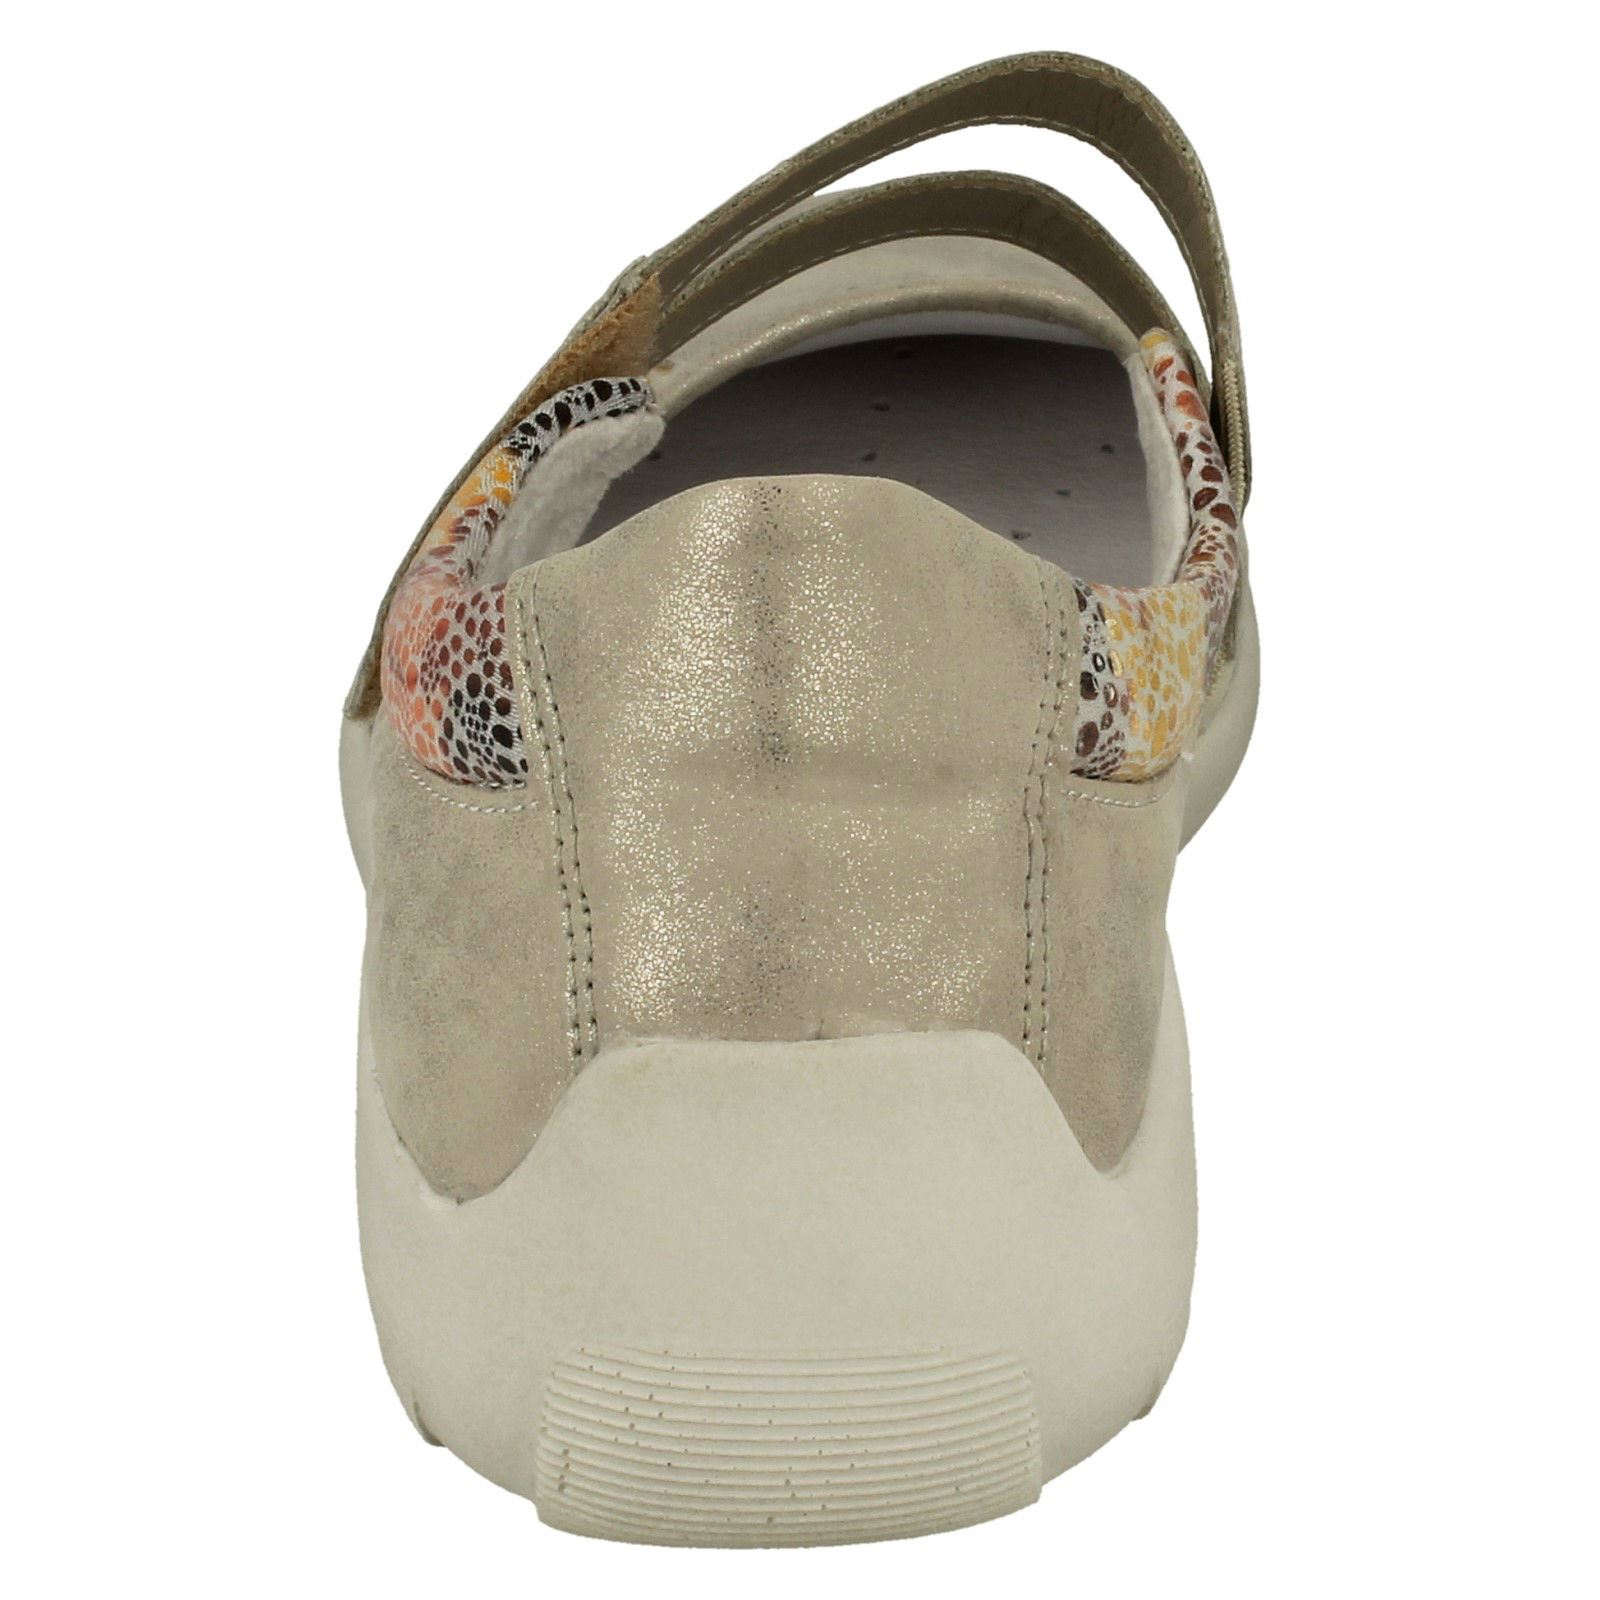 Ladies Remonte Flat Flat Flat Casual shoes 'R3510' a58bc1